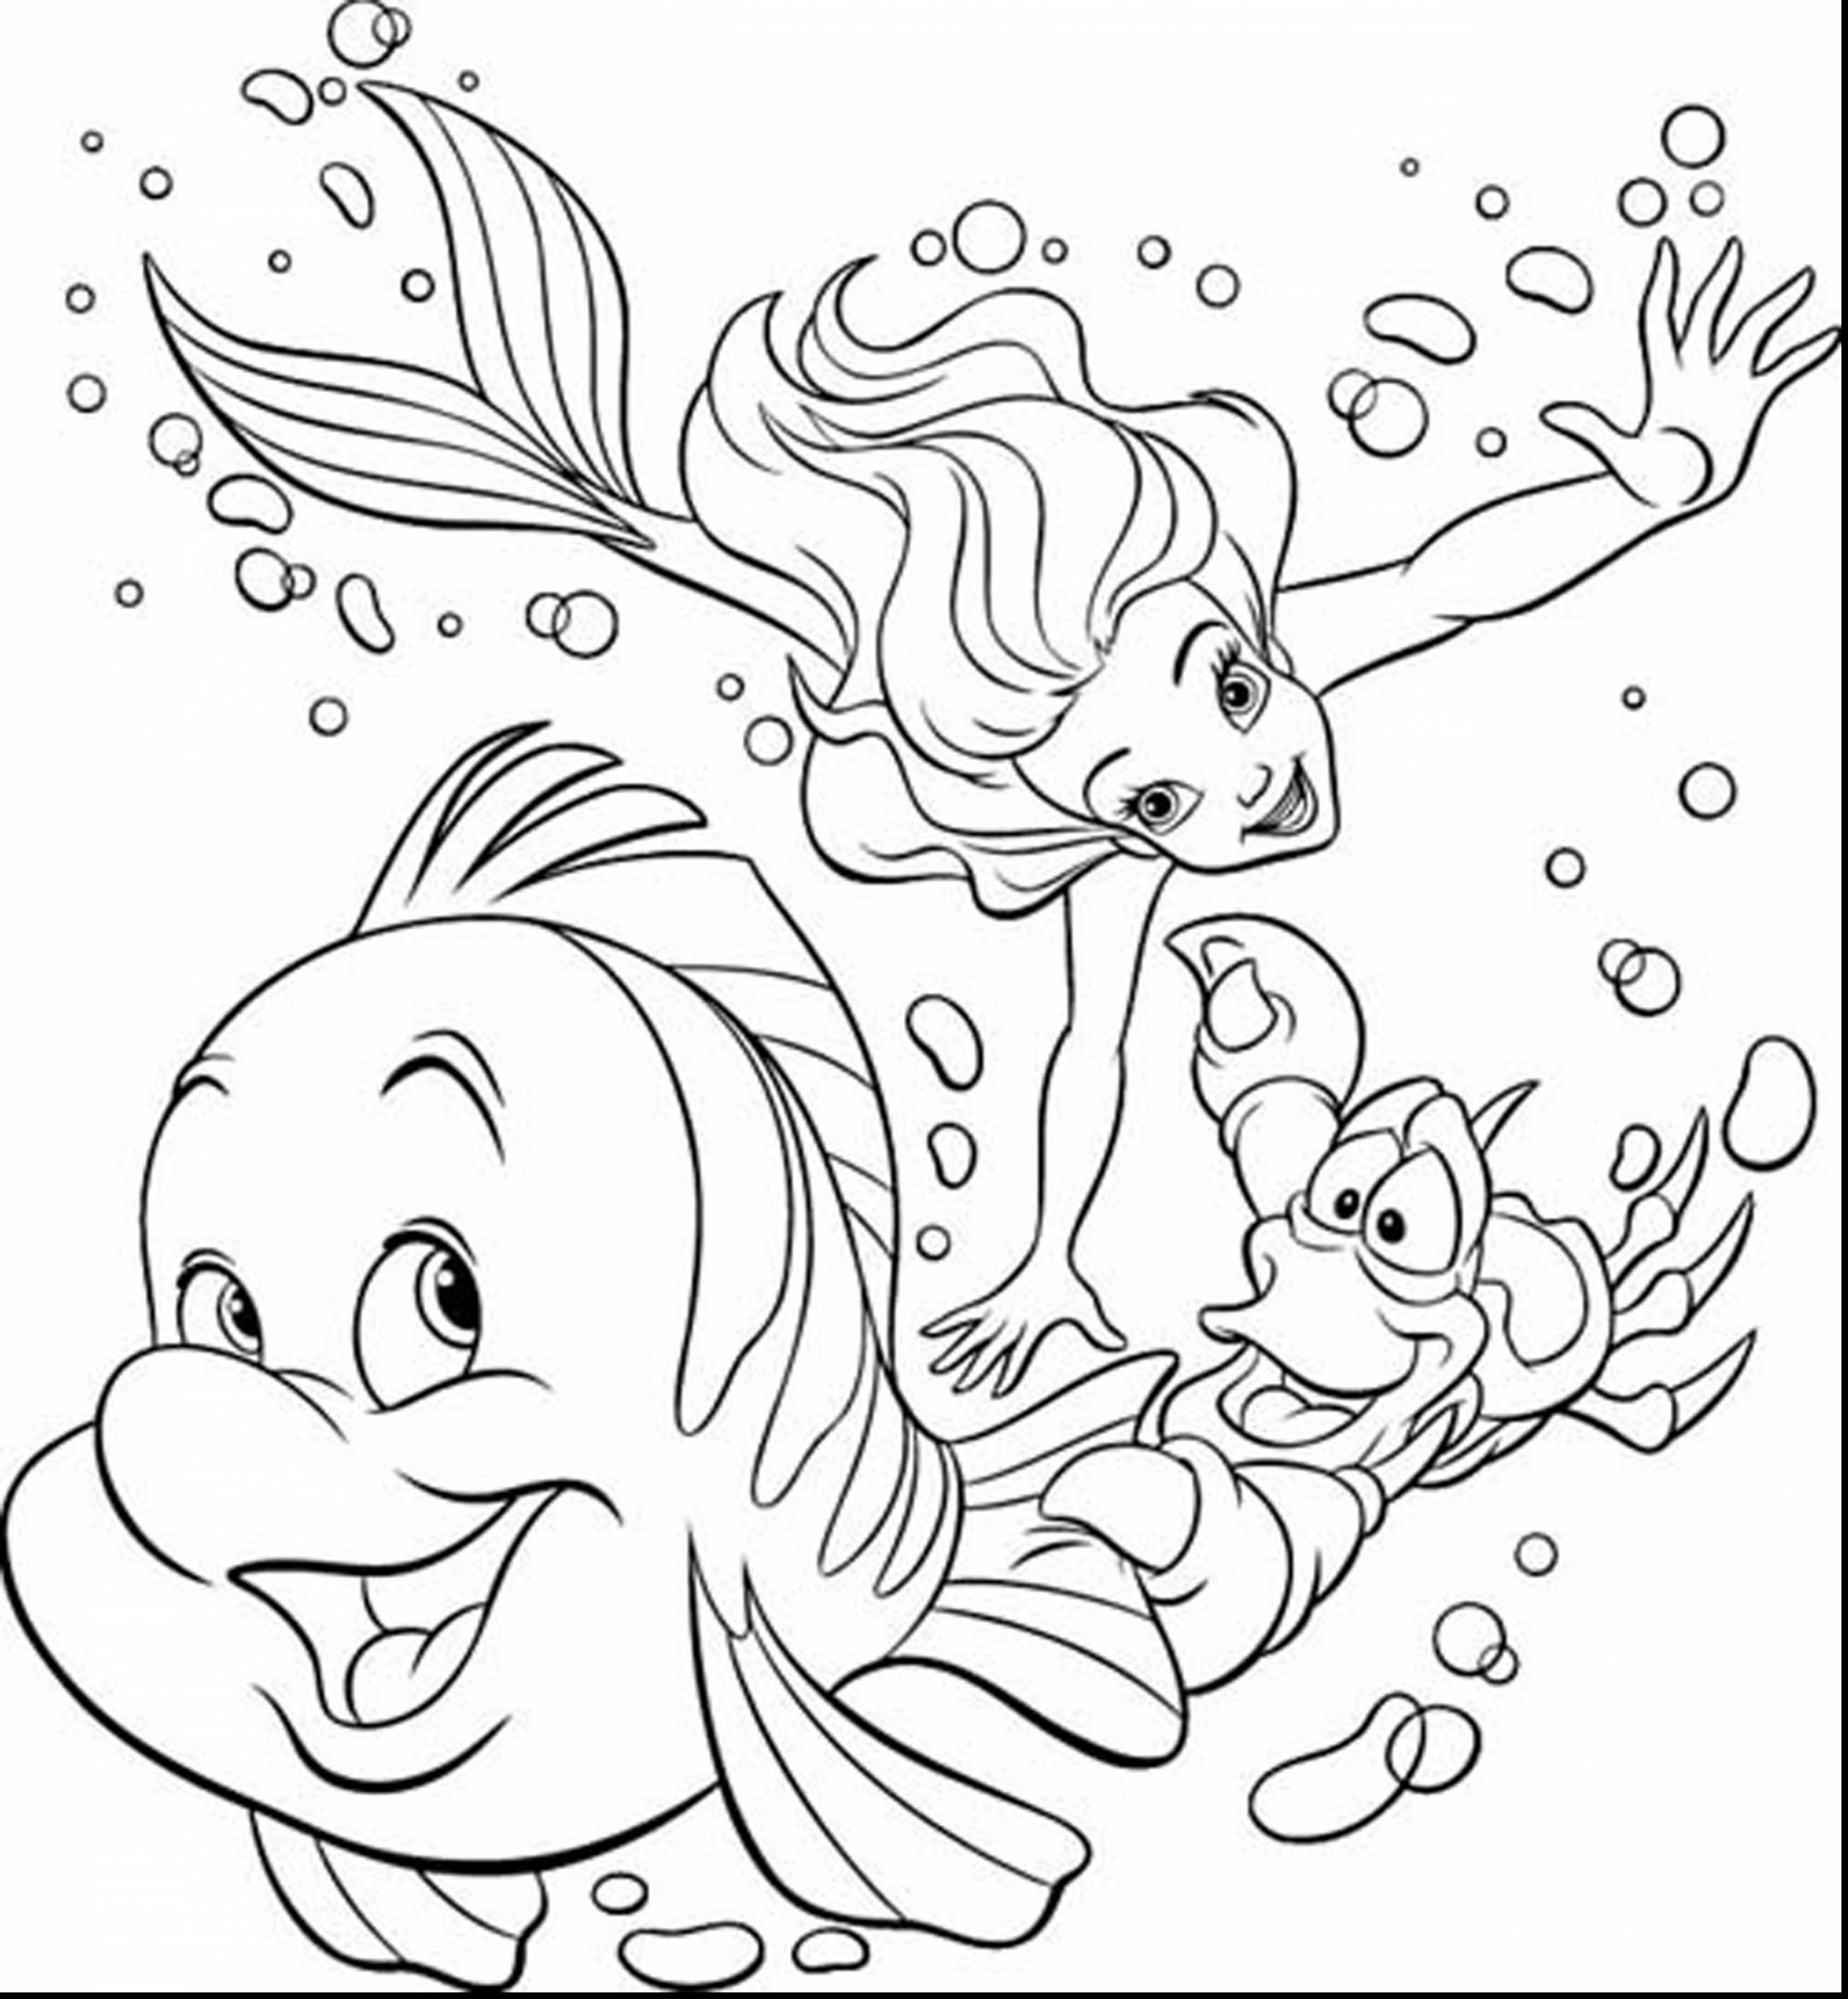 Princess Print Out Coloring Pages At Getdrawings Free Download